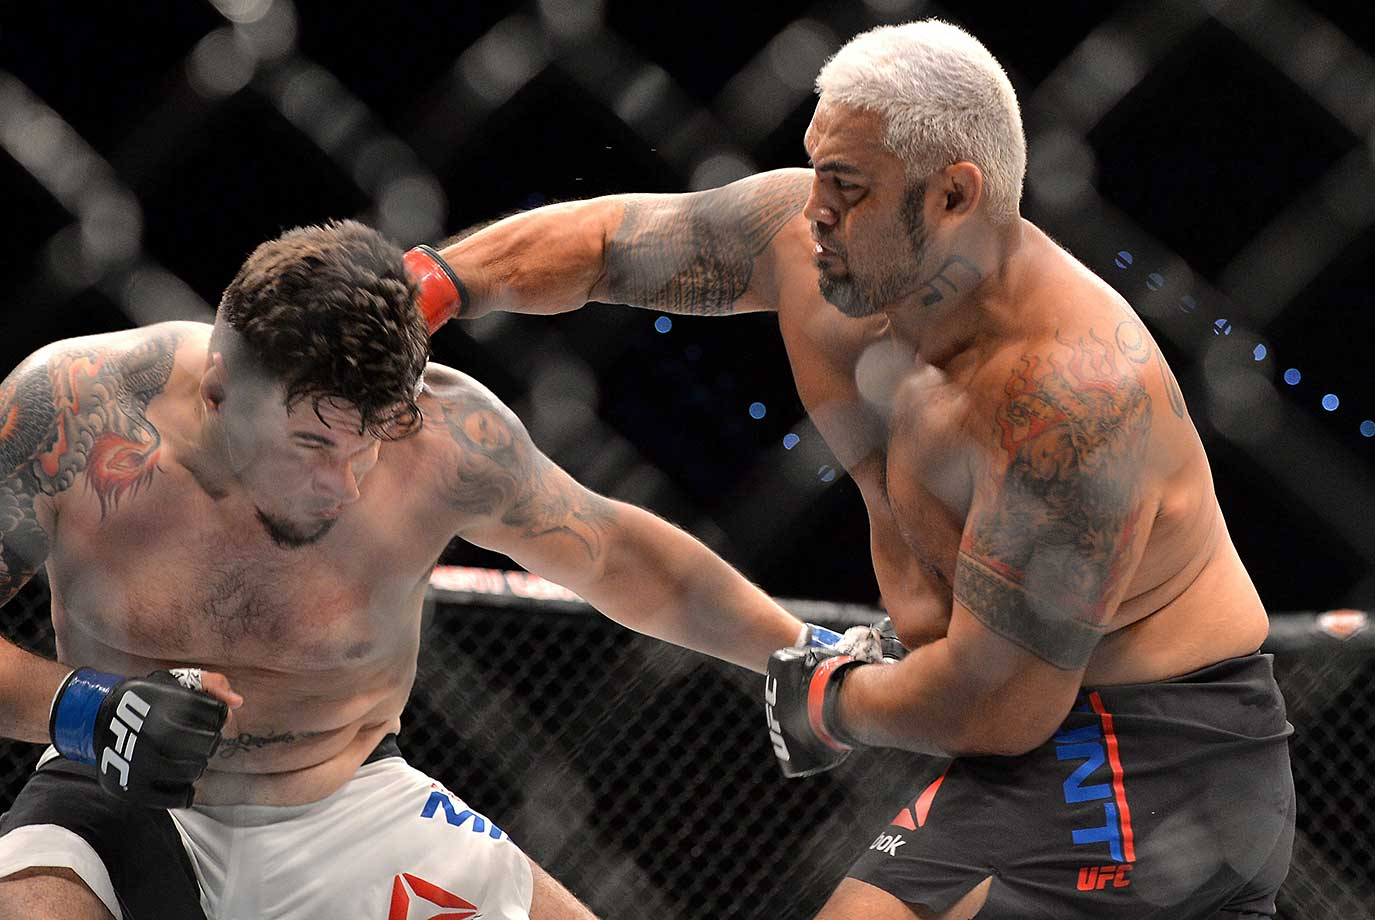 Mark Hunt delivers the knockout punch against Frank Mir during their UFC heavyweight bout at UFC Brisbane.